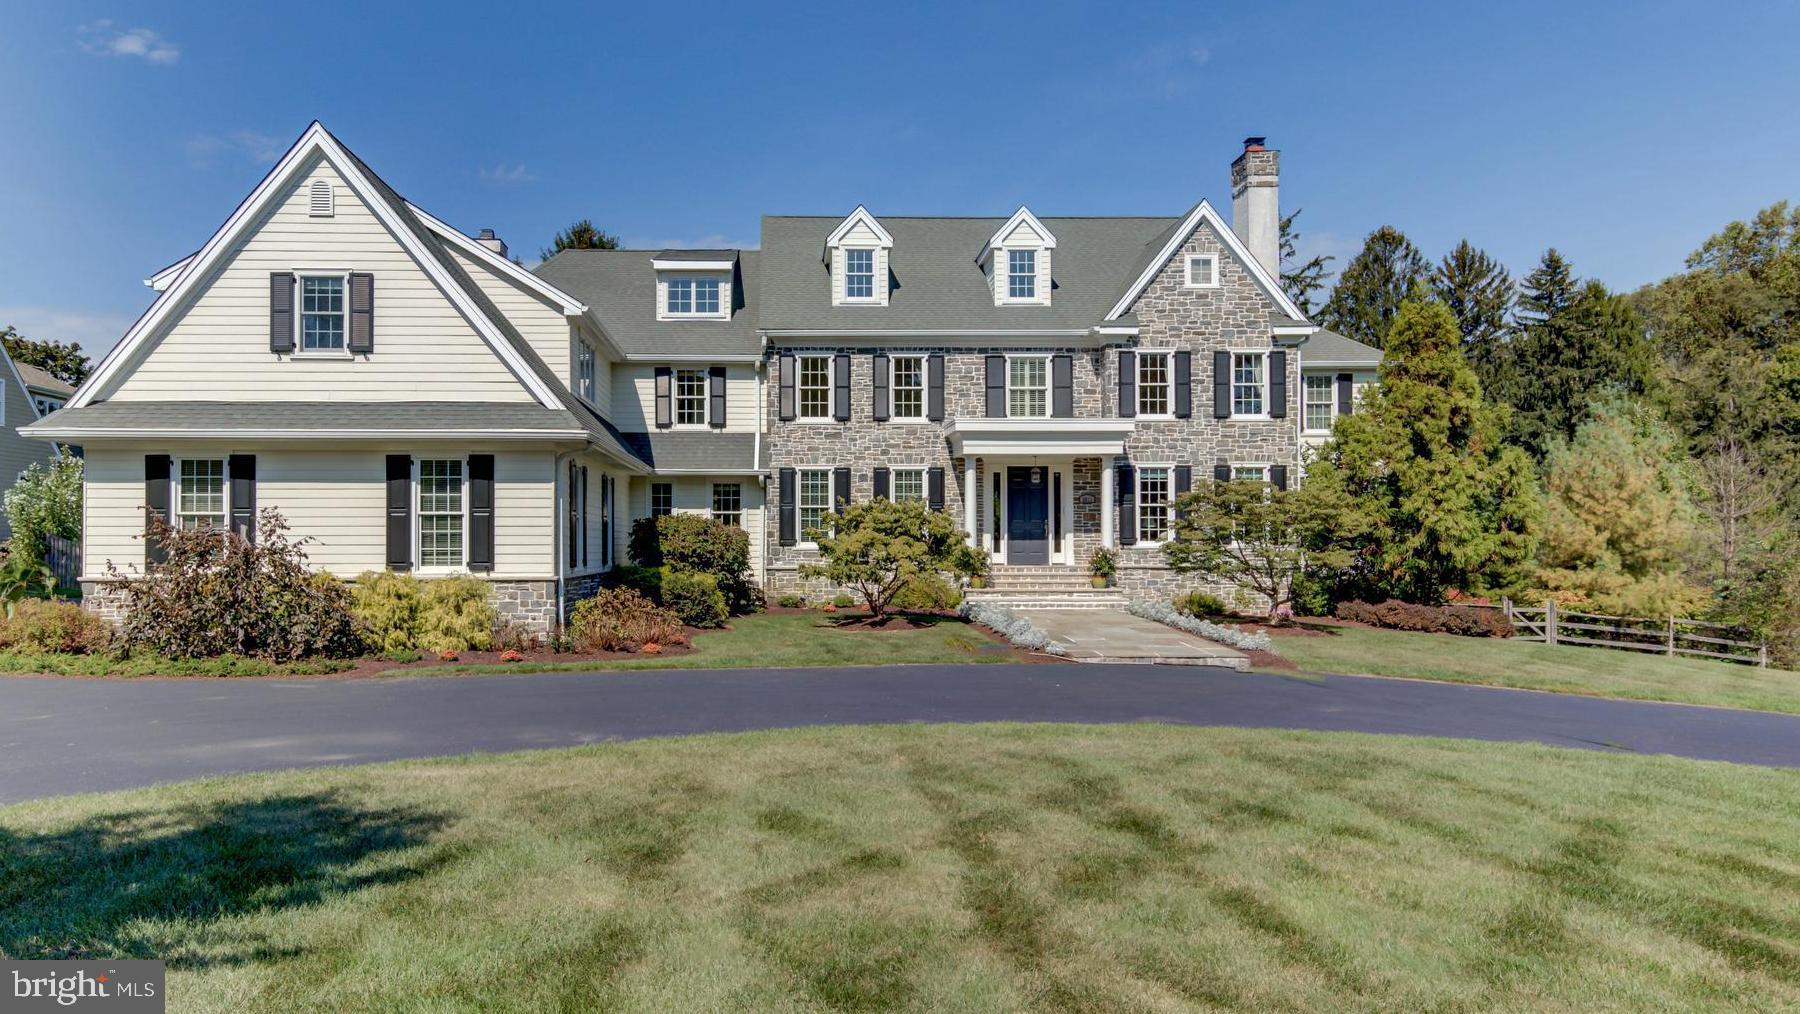 3511 SAWMILL ROAD, NEWTOWN SQUARE, PA 19073